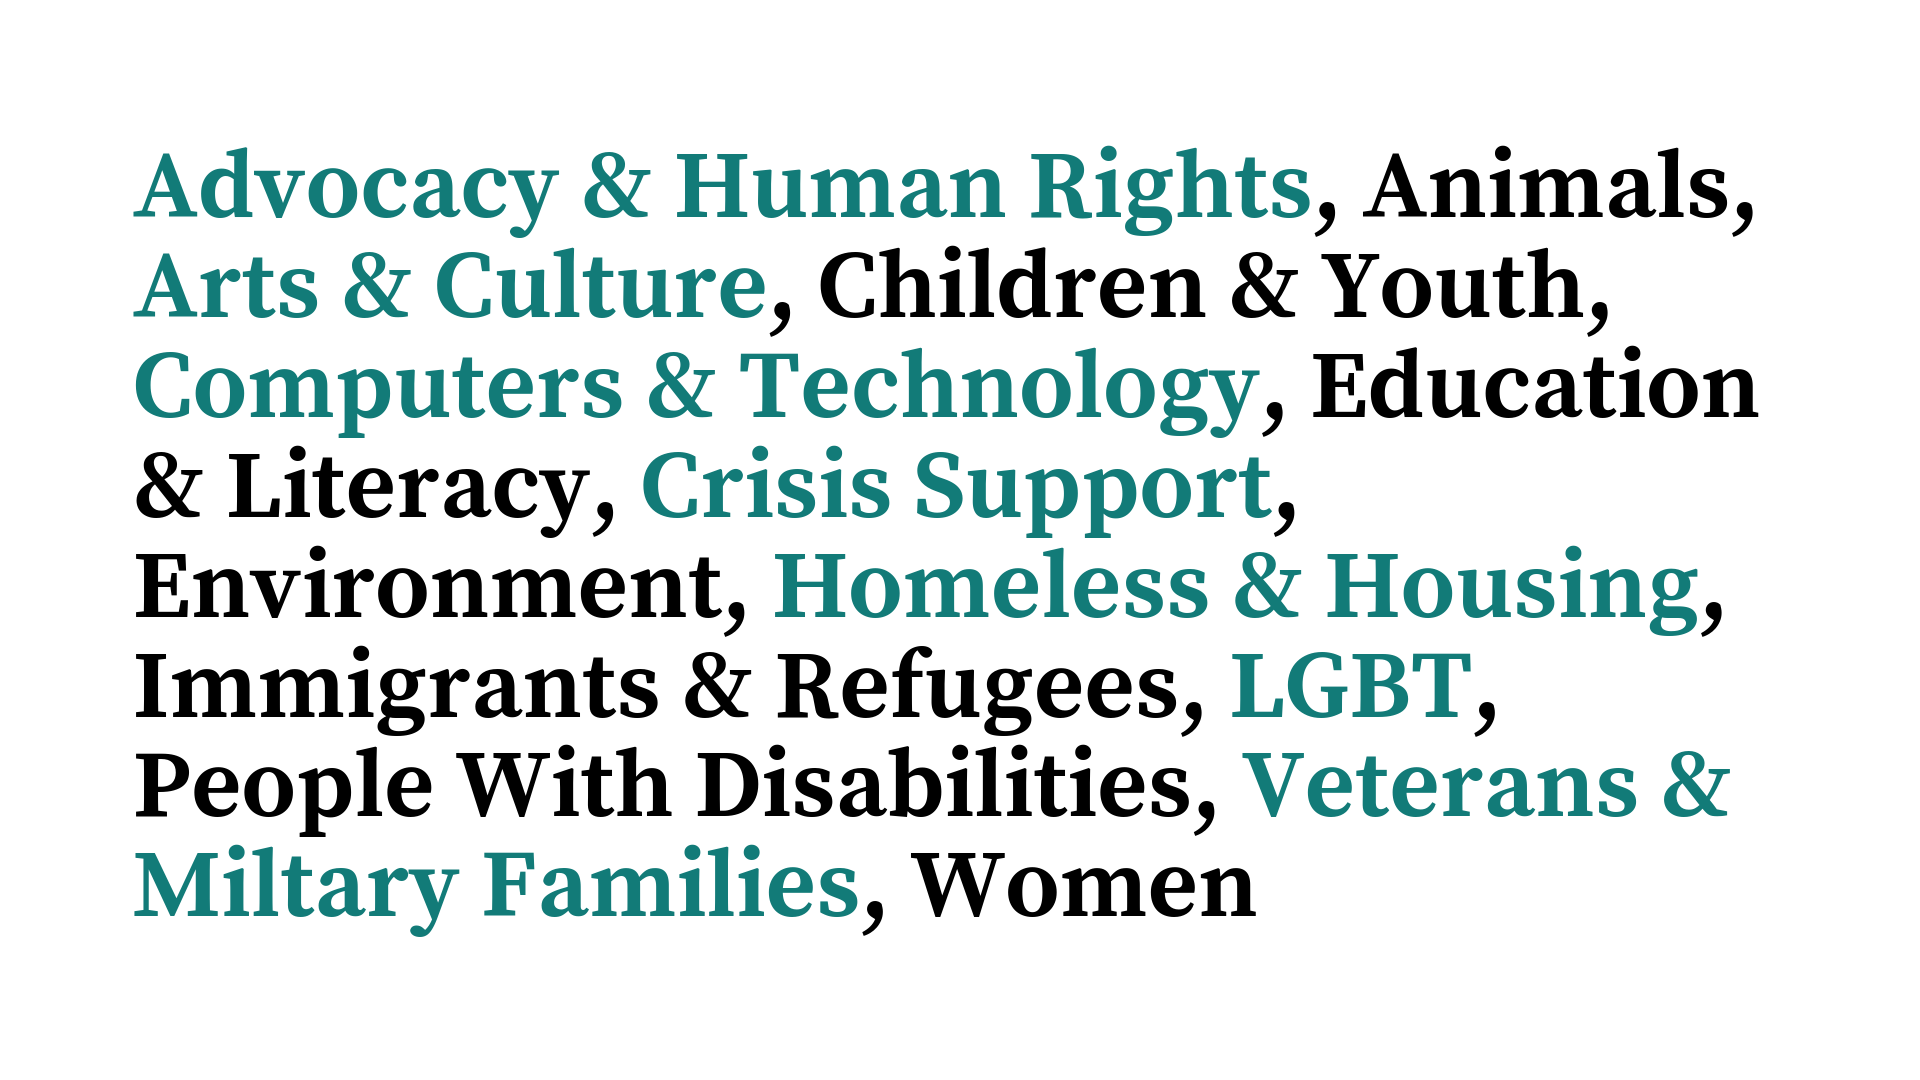 Animals, Arts & Culture, Children & Youth, Computers & Technology, Education & Literacy, Crisis Support, Environment, Homeless & Housing, Immigrants & Refugees, LGBT, People With Disabilities, Veterans & Miltary F.png